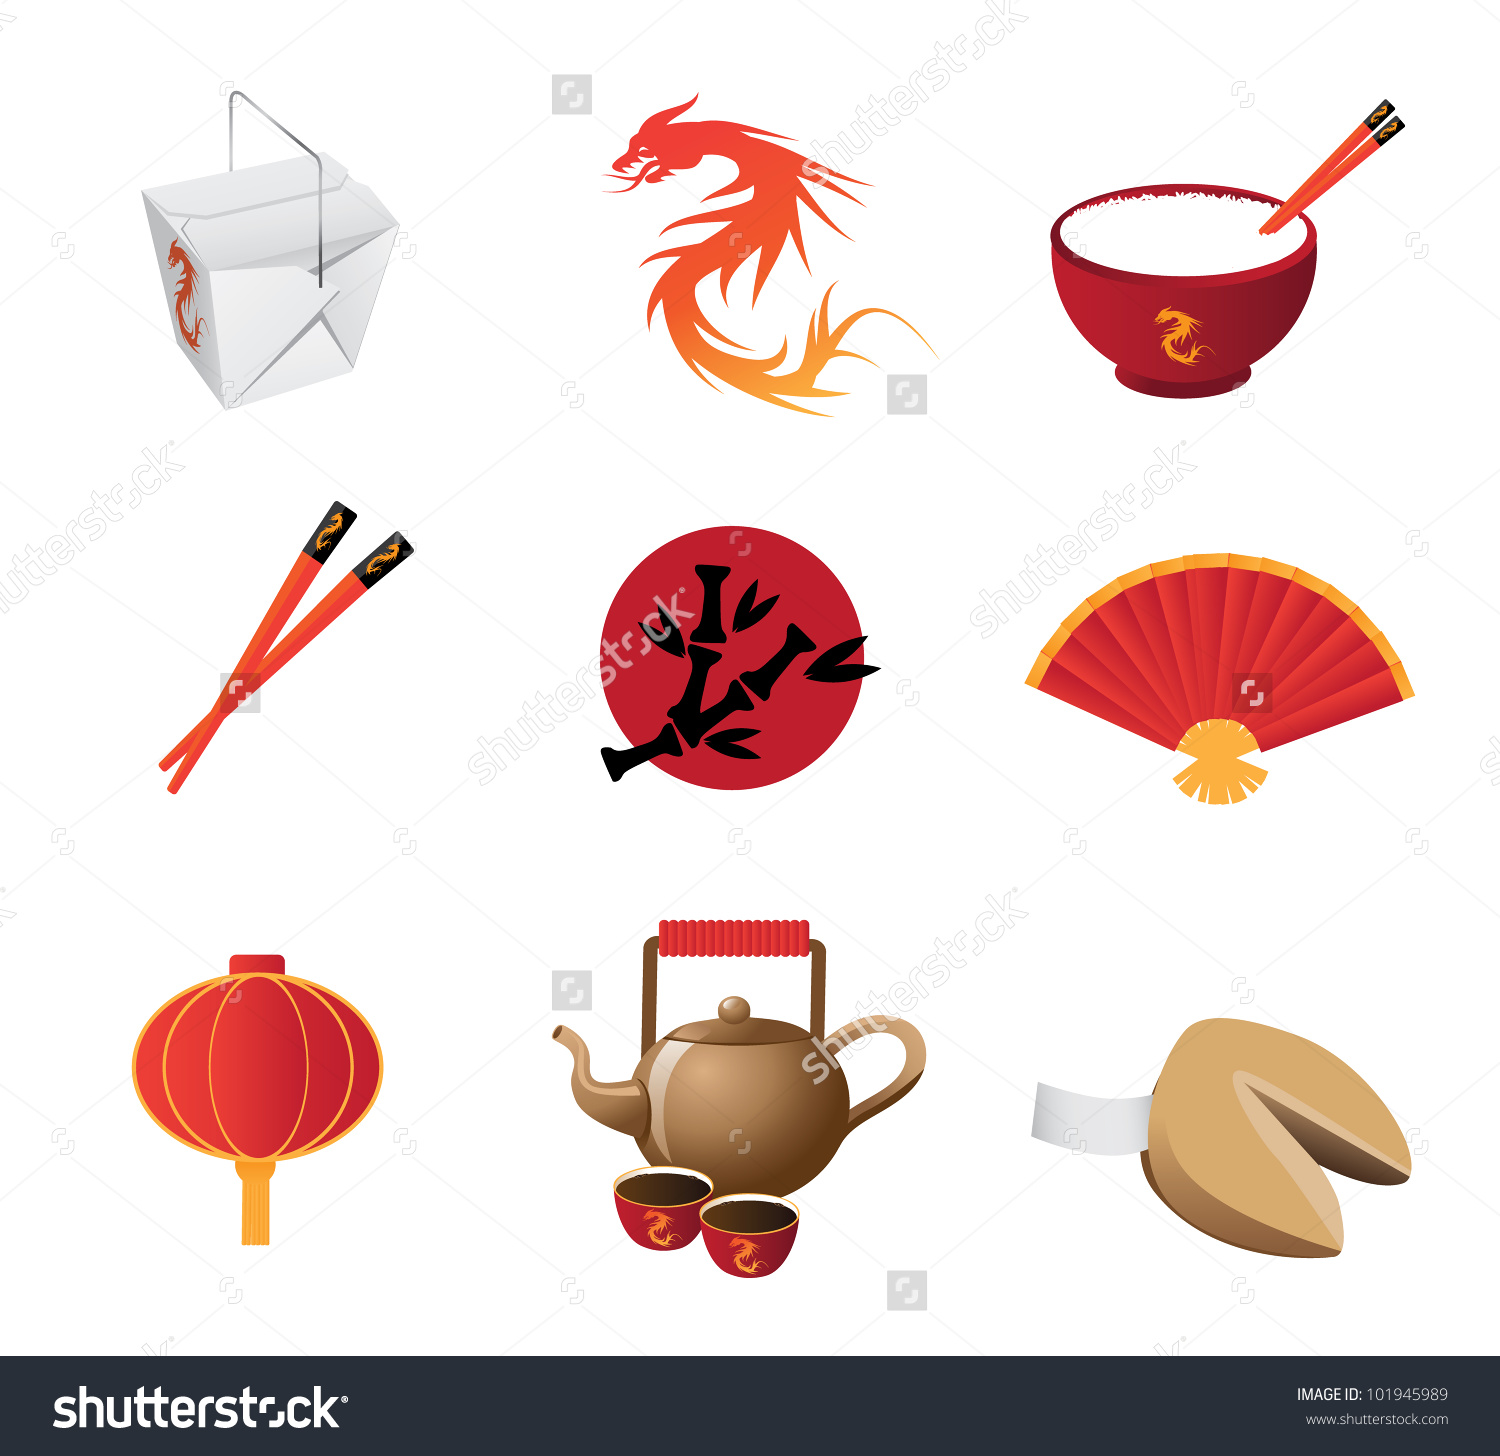 Chinese Restaurant Icon Set Eps 8 Vector, Grouped For Easy Editing.